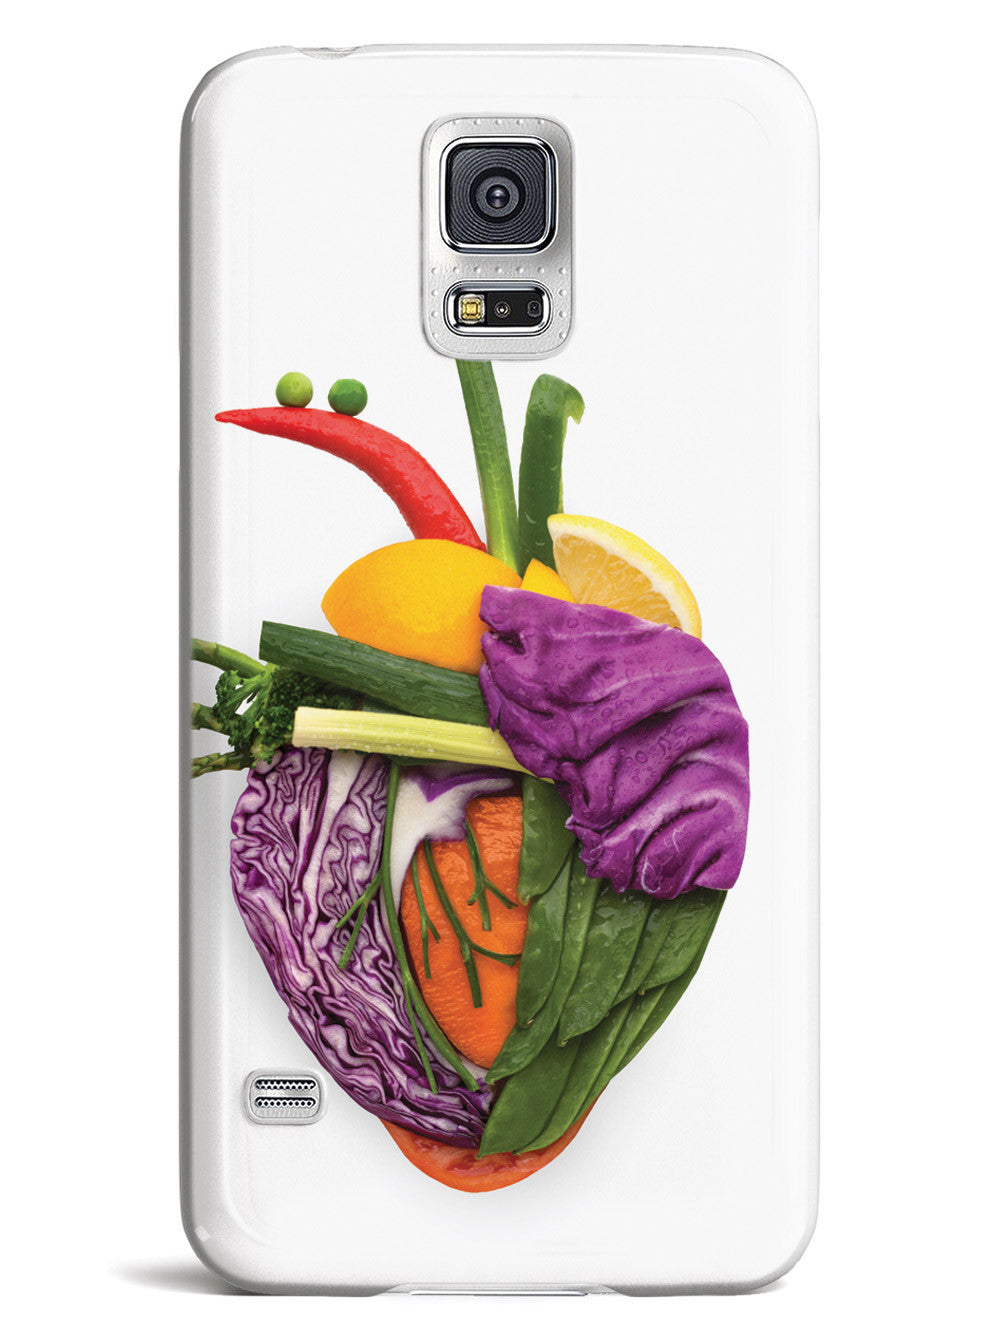 Anatomical Veggie Heart - White Case